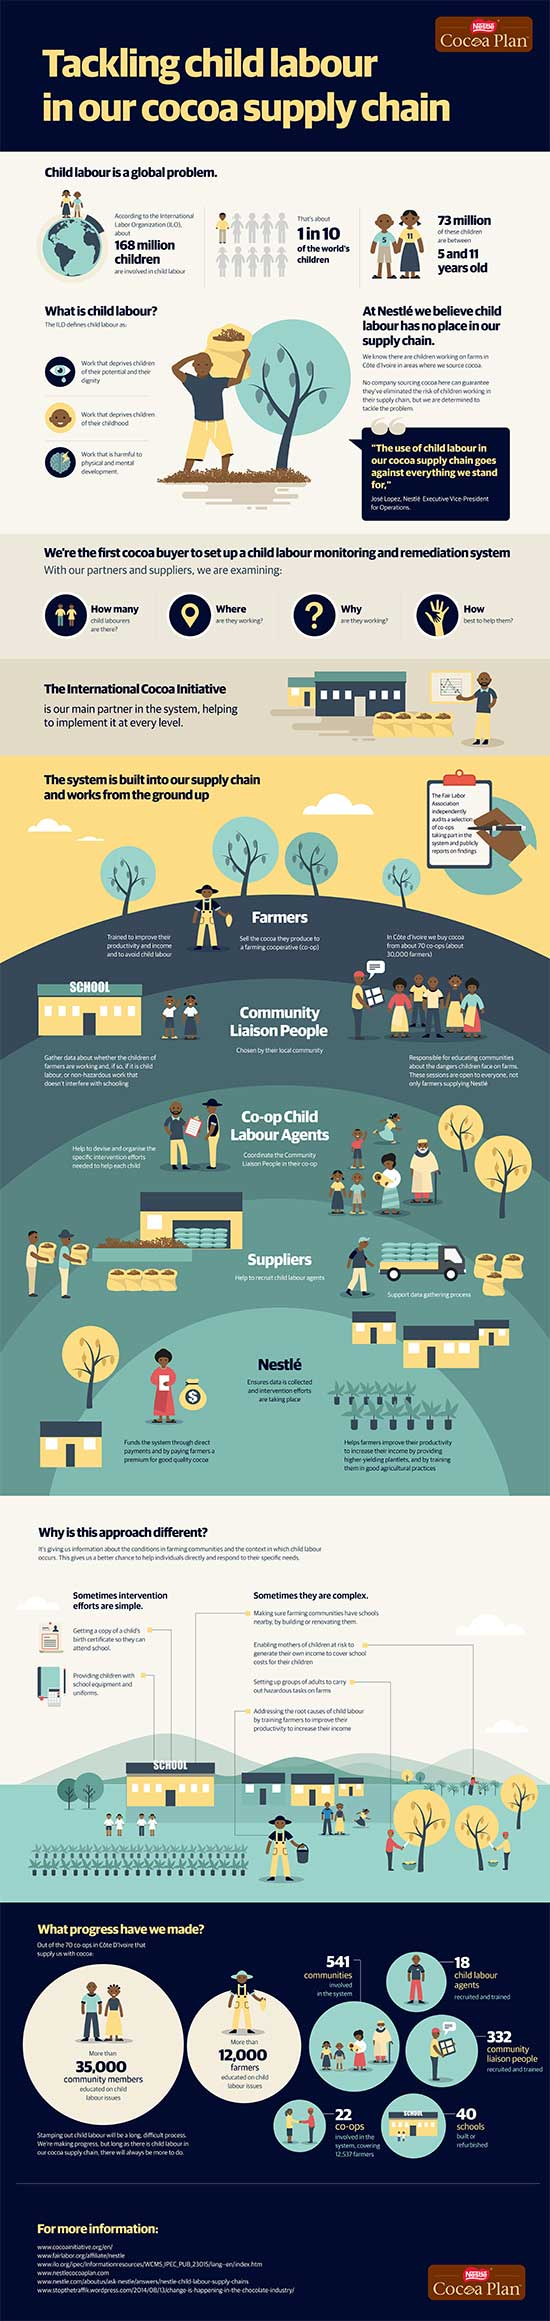 Click to view full screen in a new window: Child Labour in Cocoa Supply Chain infographic